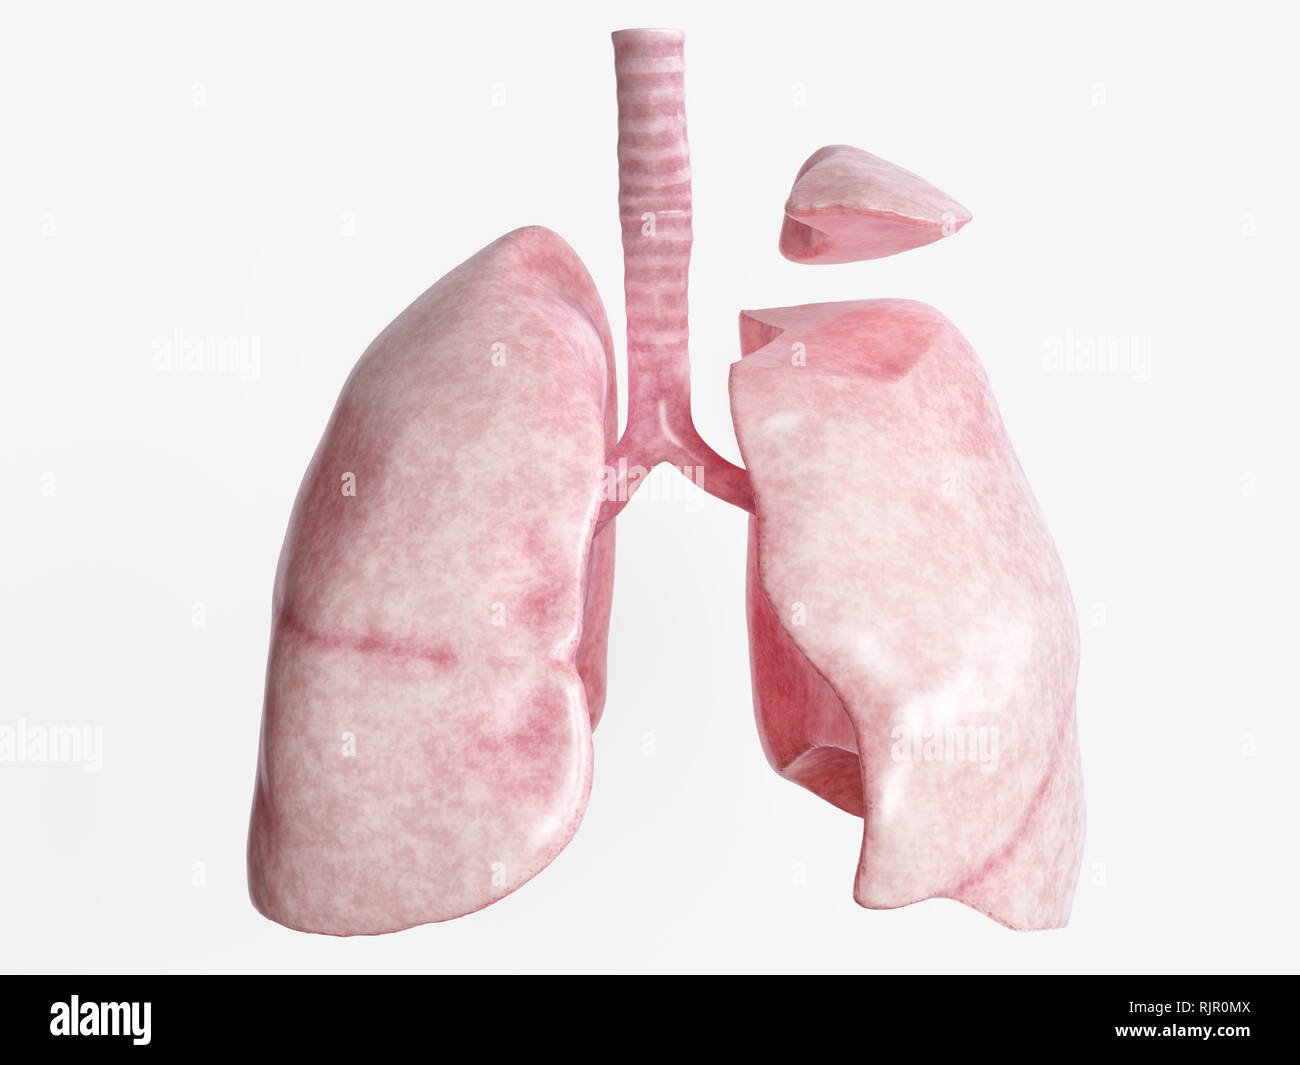 Segmental resection after severe lung disease - 2 of 4 - 3D Rendering - Stock Image